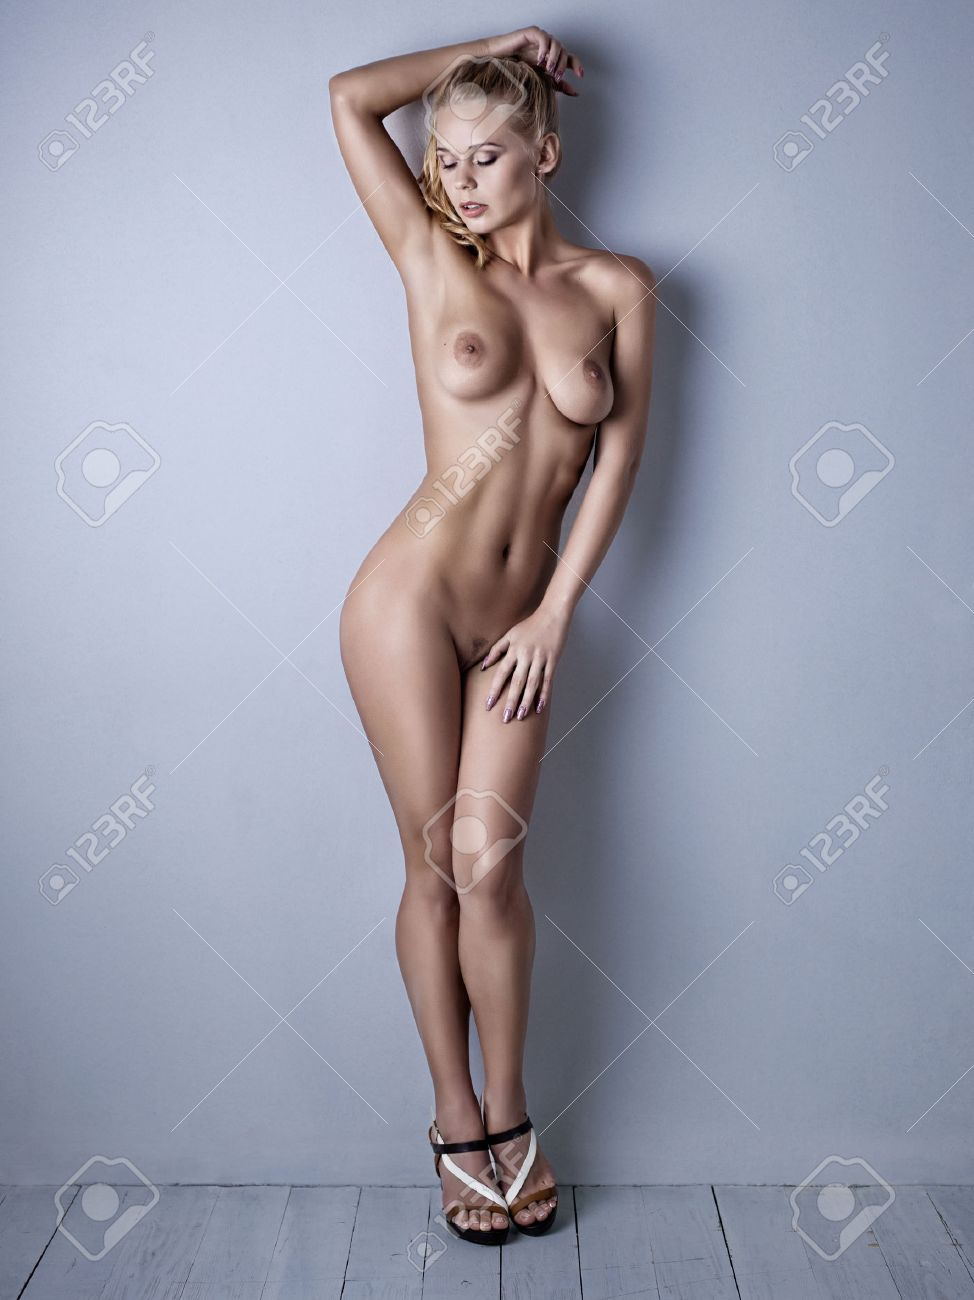 Sexy uk women naked